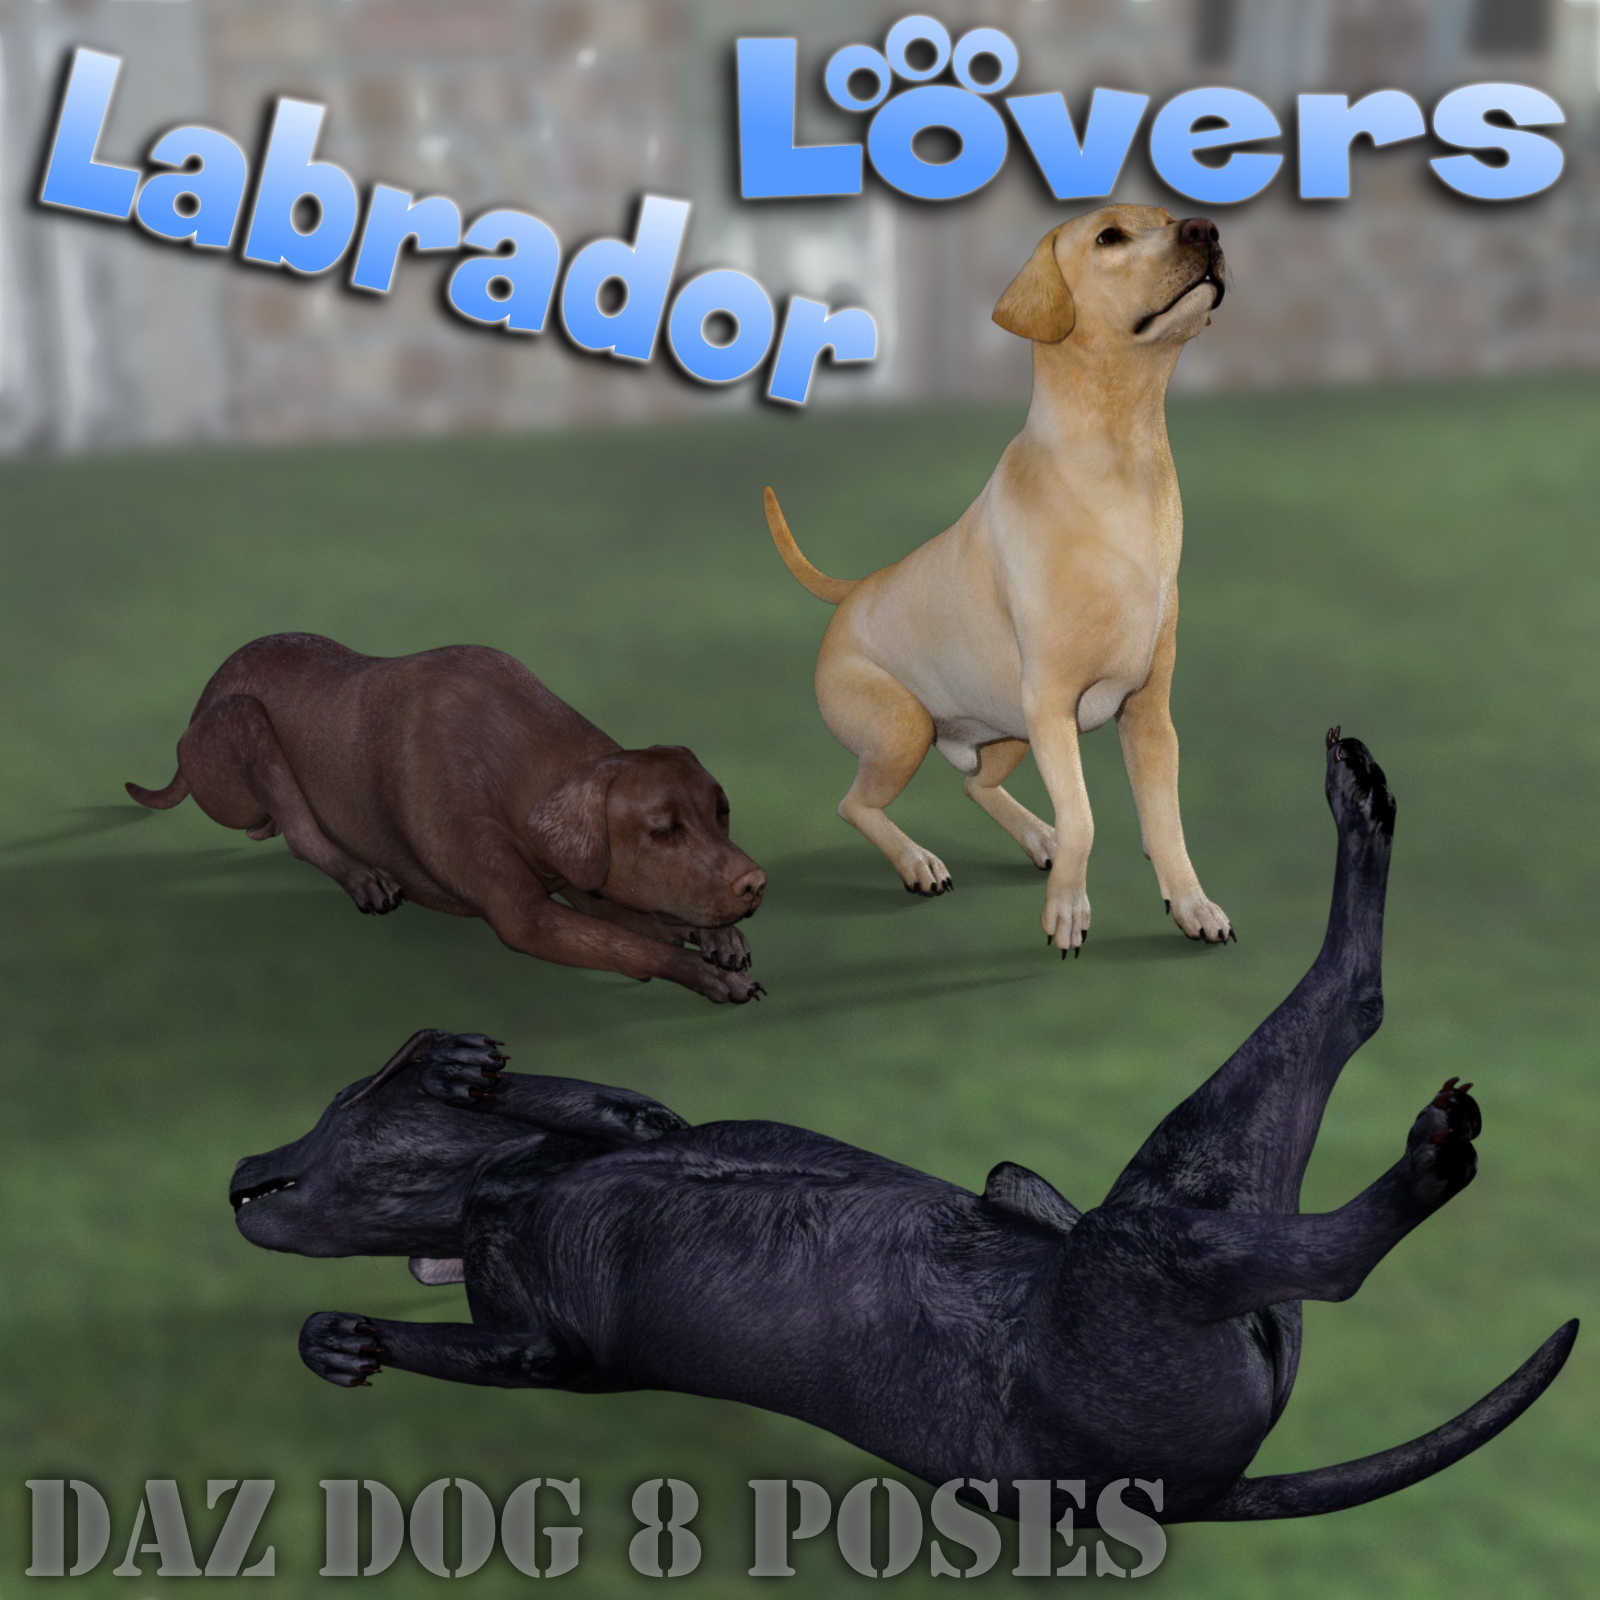 LABRADOR Lovers Poses for Labrador Breed  by Winterbrose